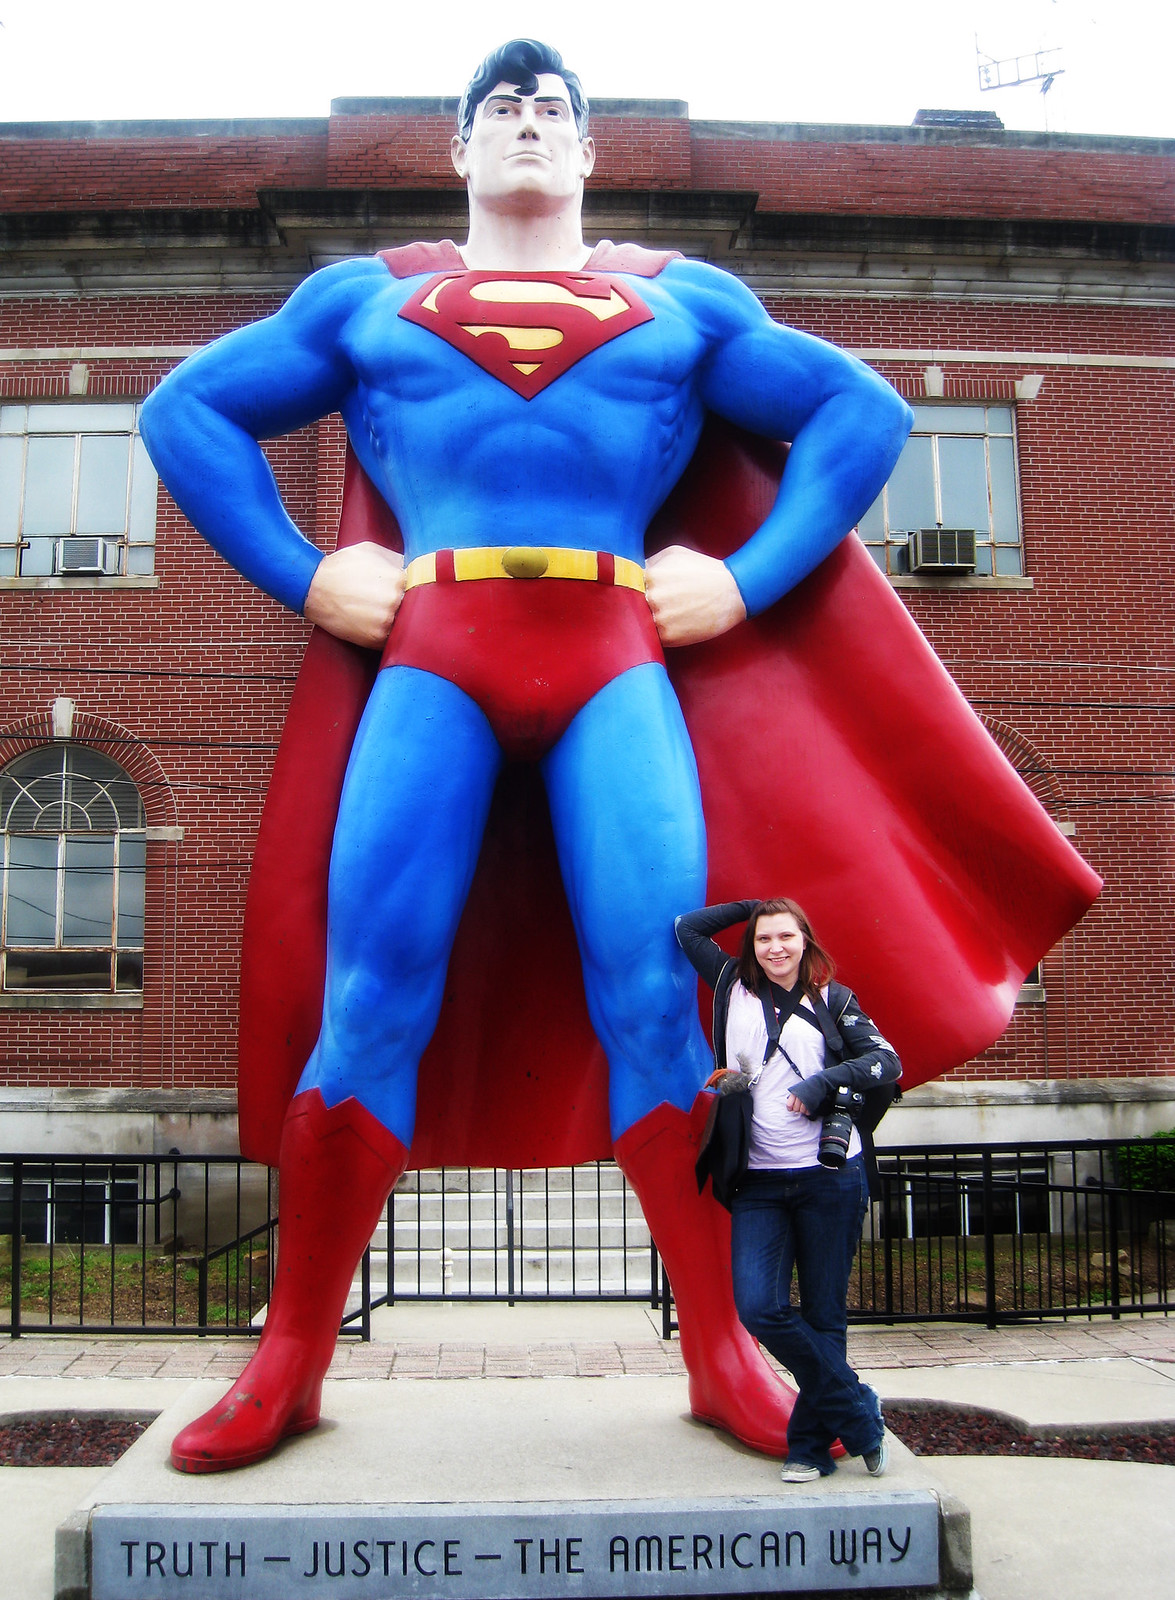 Val with the Giant Superman statue, a roadside attraction in Metropolis, Illinois.